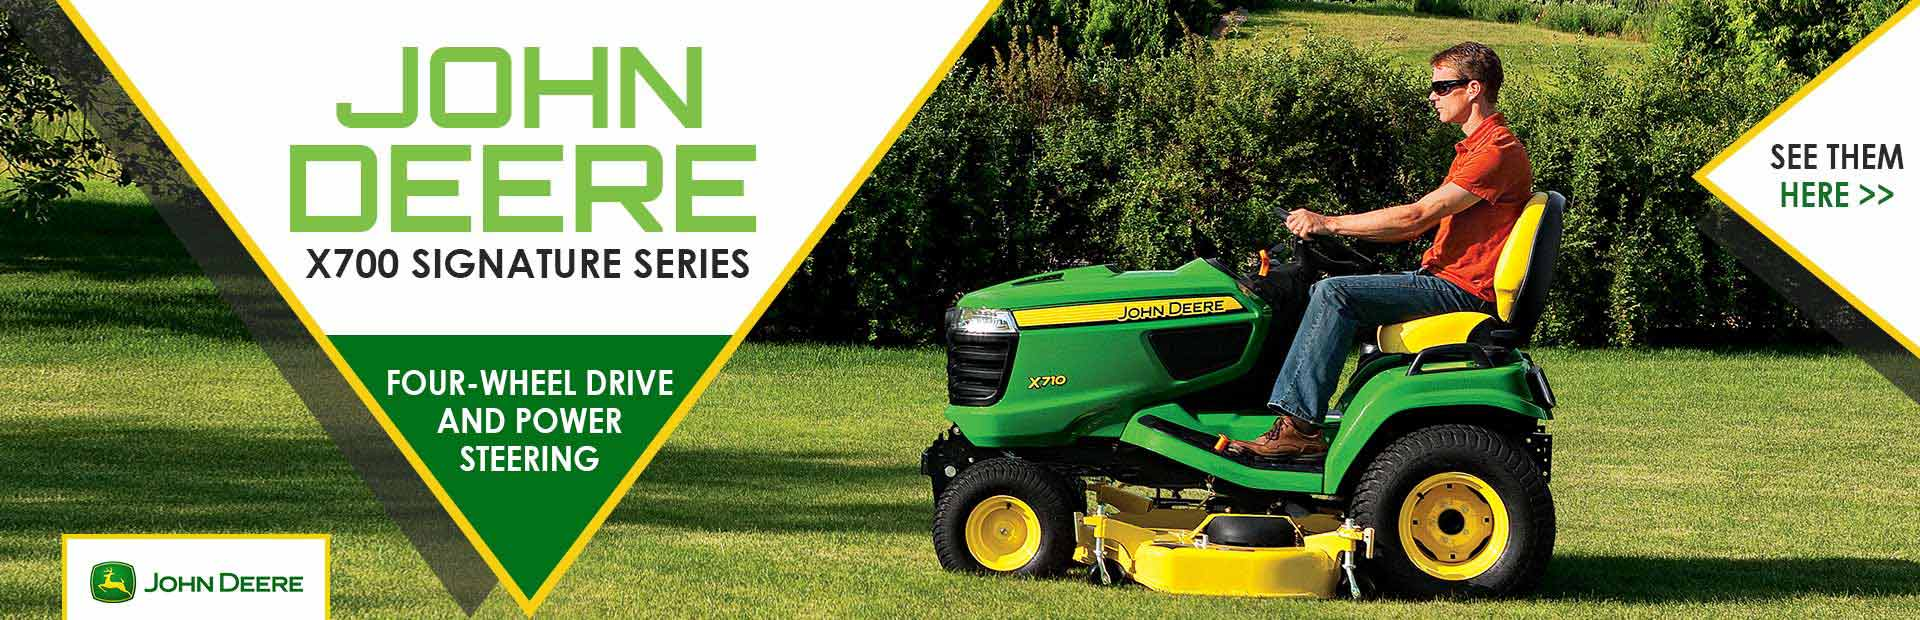 John Deere X700 Signature Series: Click here to view the models.